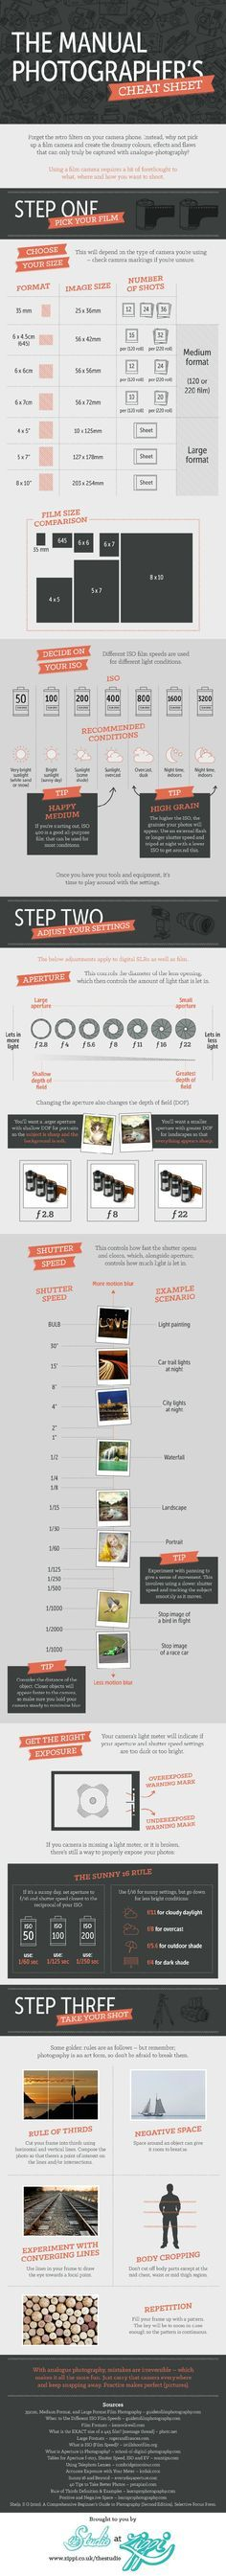 the-manual-photographers-cheat-sheet